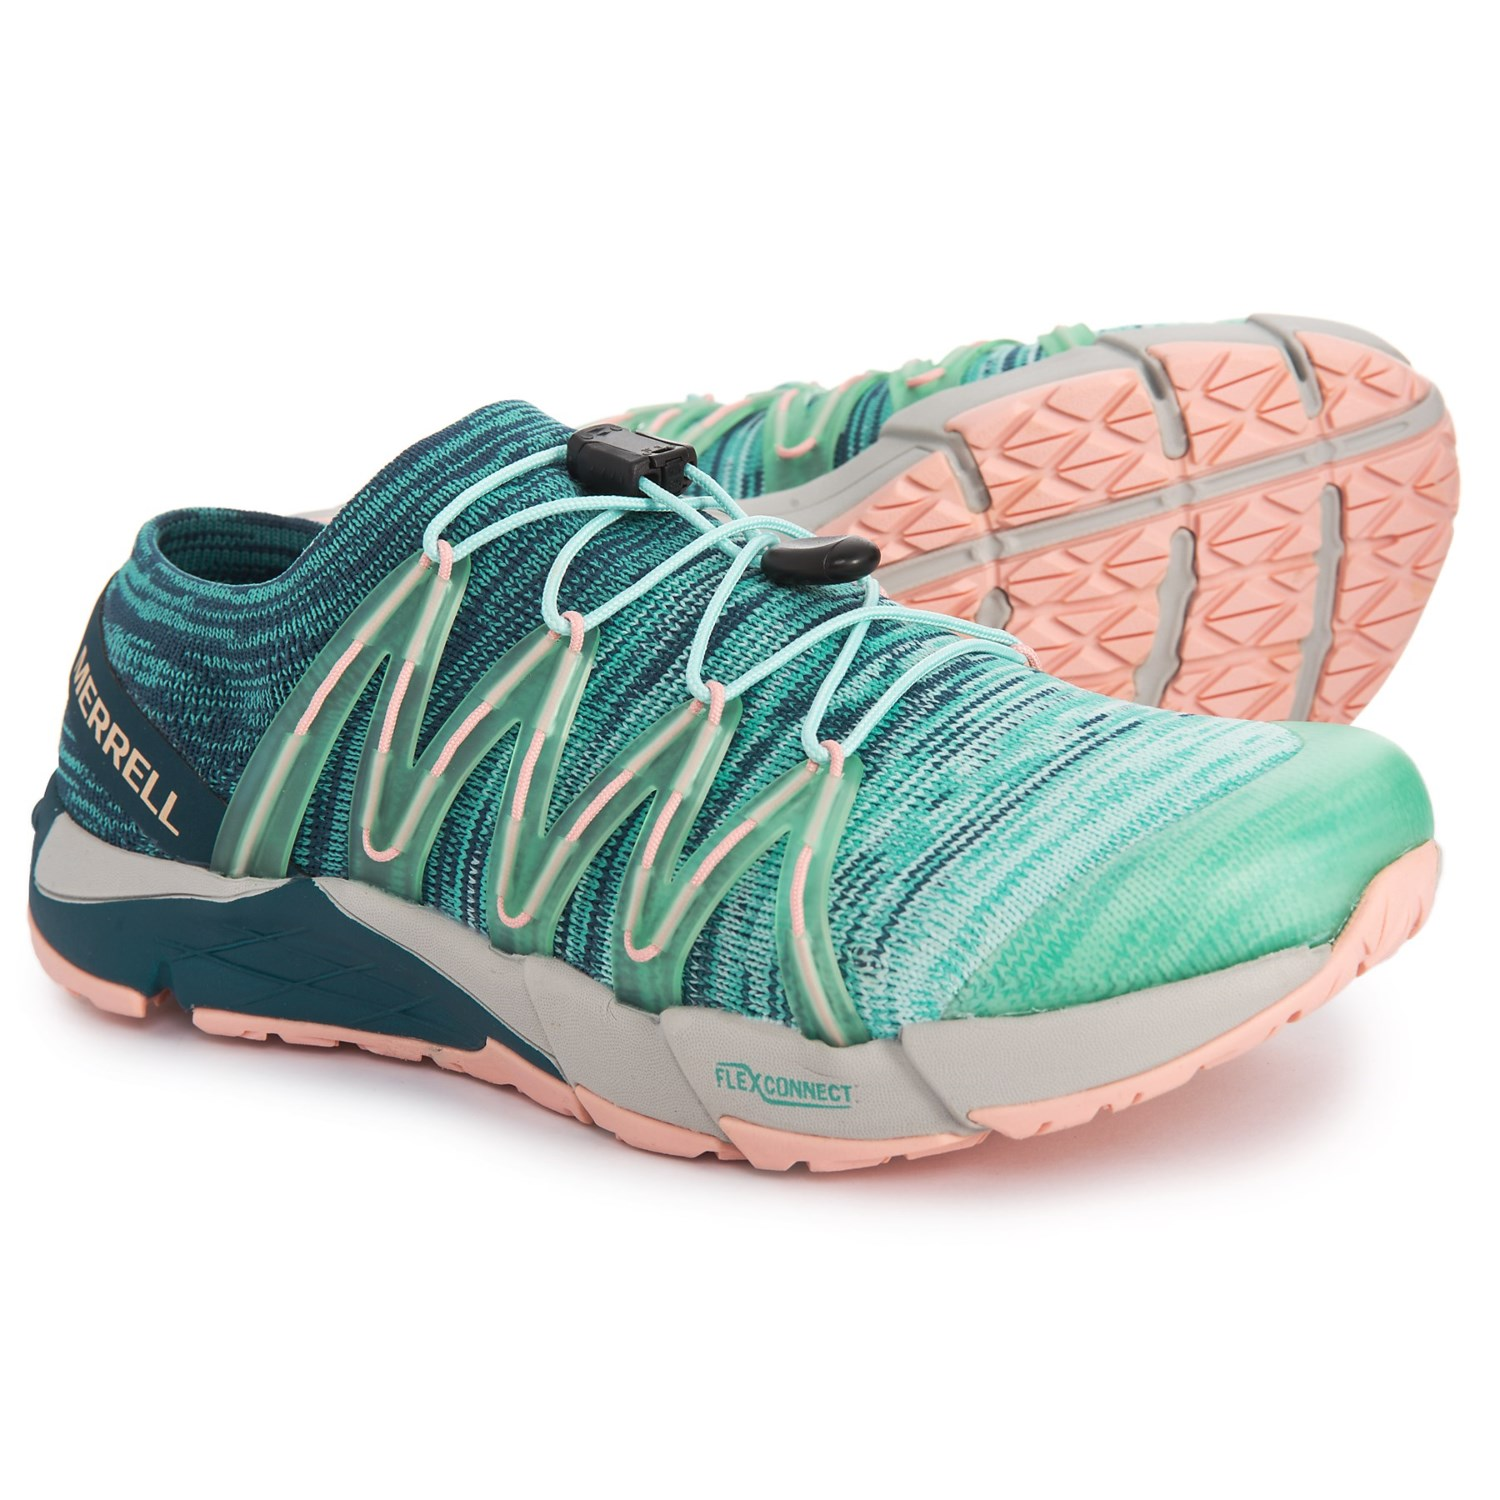 de89a55292f Merrell Bare Access Flex Knit Trail Running Shoes (For Women) - Save 46%